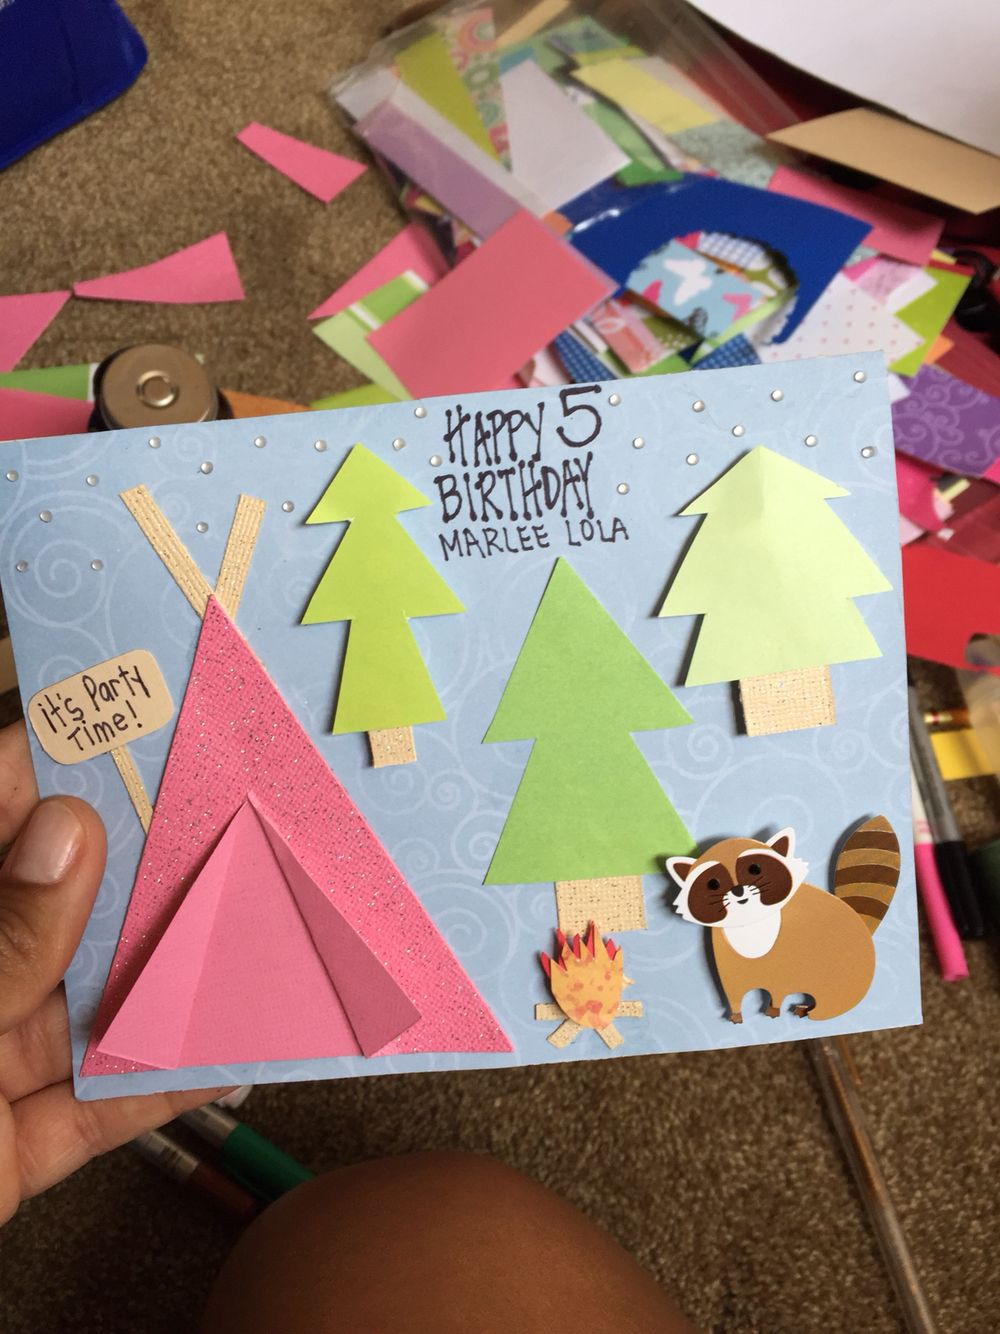 Happy glamping a birthday card for a year old who had a glamping